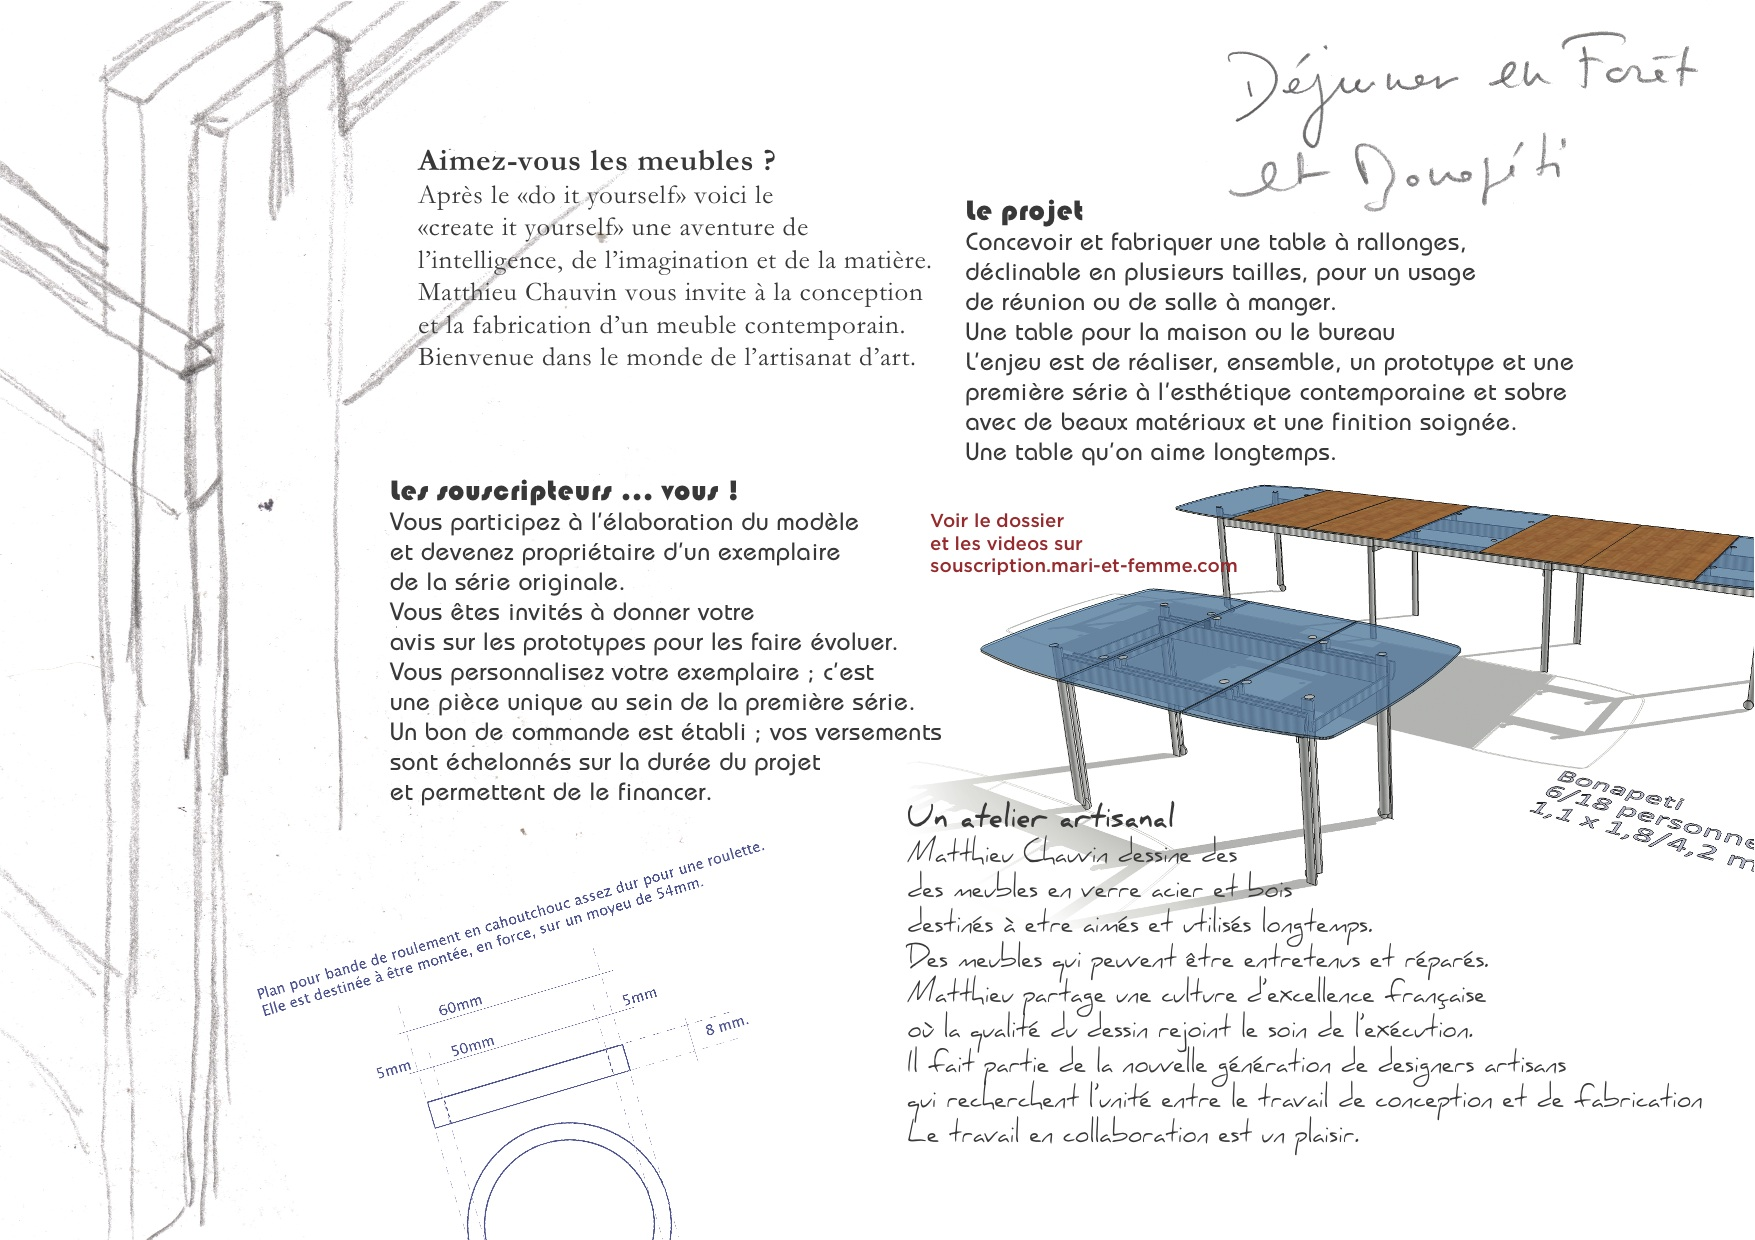 dessin de conception de la table de salle à manger